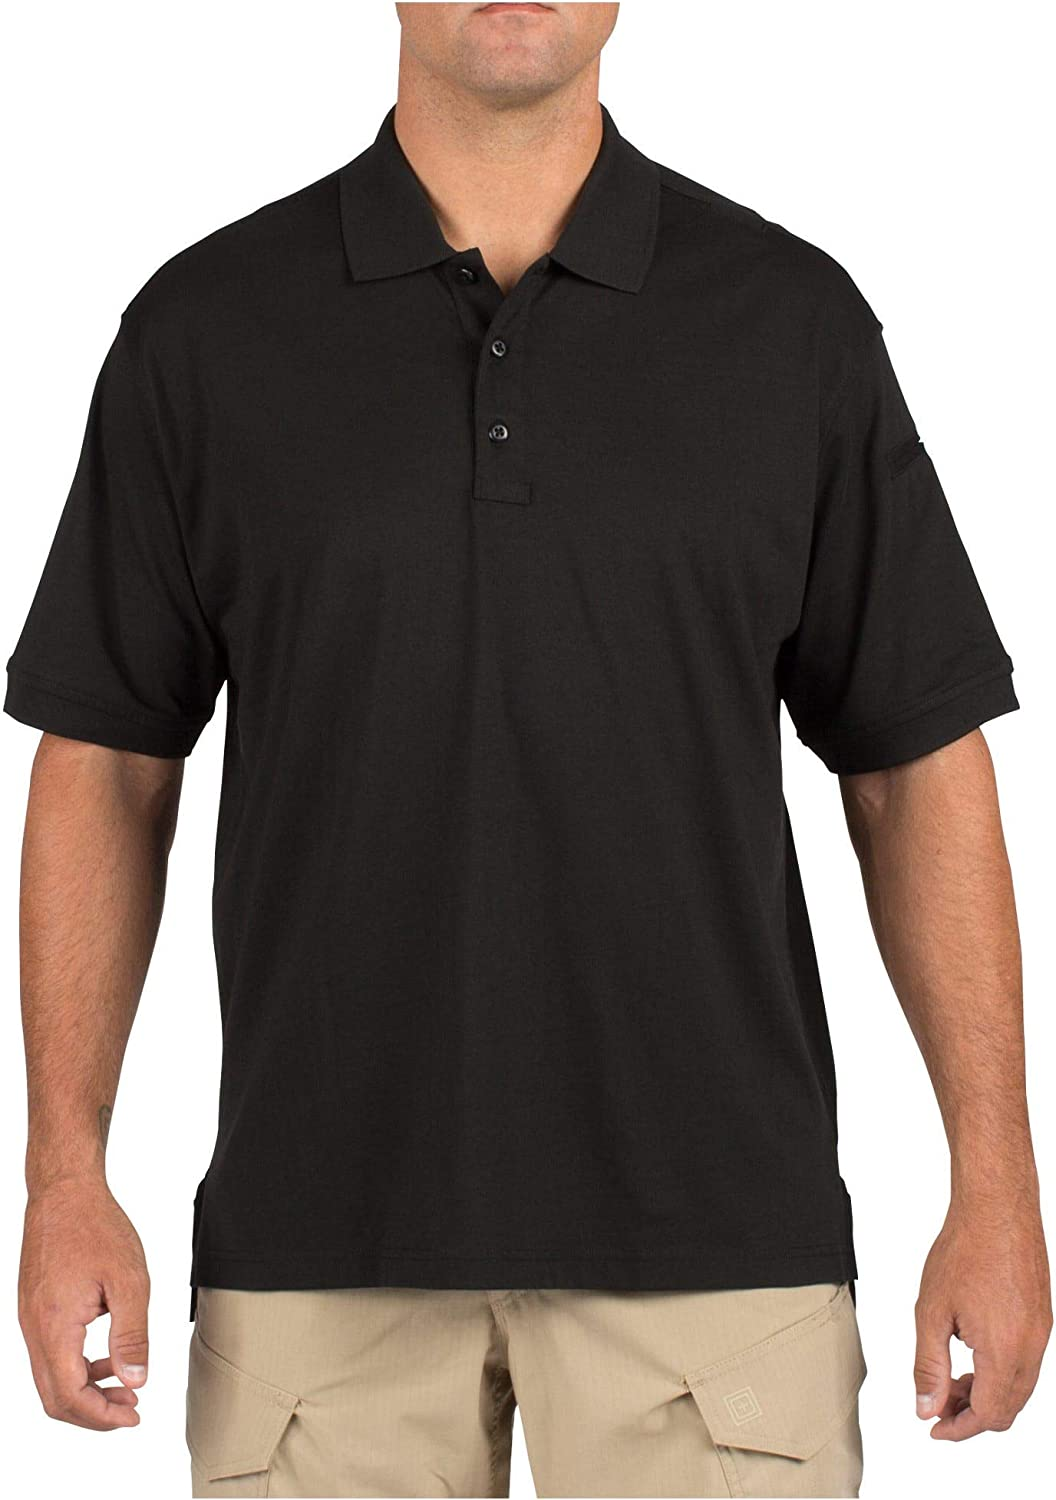 5.11 Tactical Men's Max 90% OFF Jersey Knit Short Wrinkle-Resi Shirt Sleeve Portland Mall